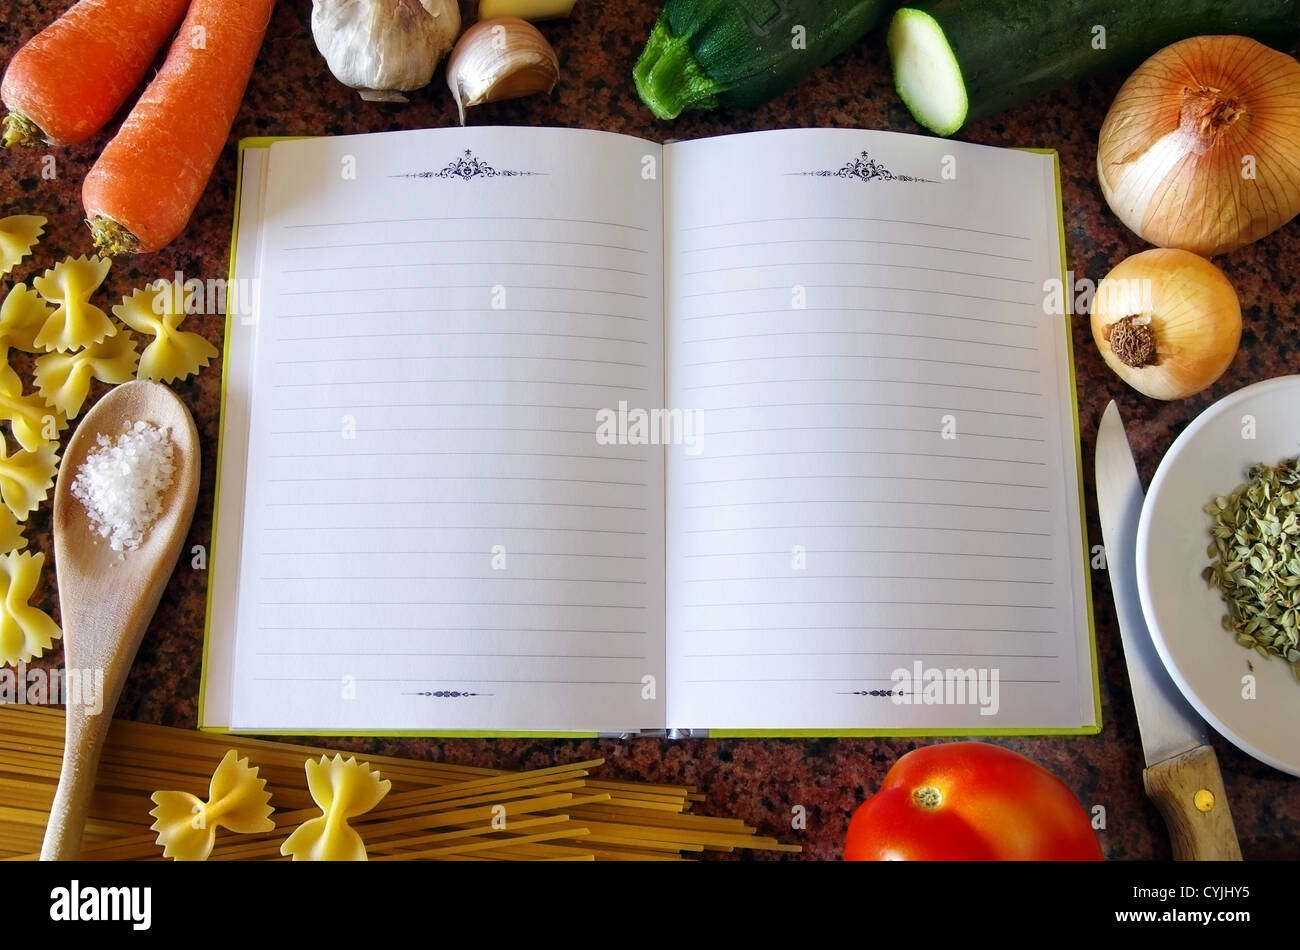 Top view of an empty recipe book surrounded of food ingredients and kitchen utensils Stock Photo